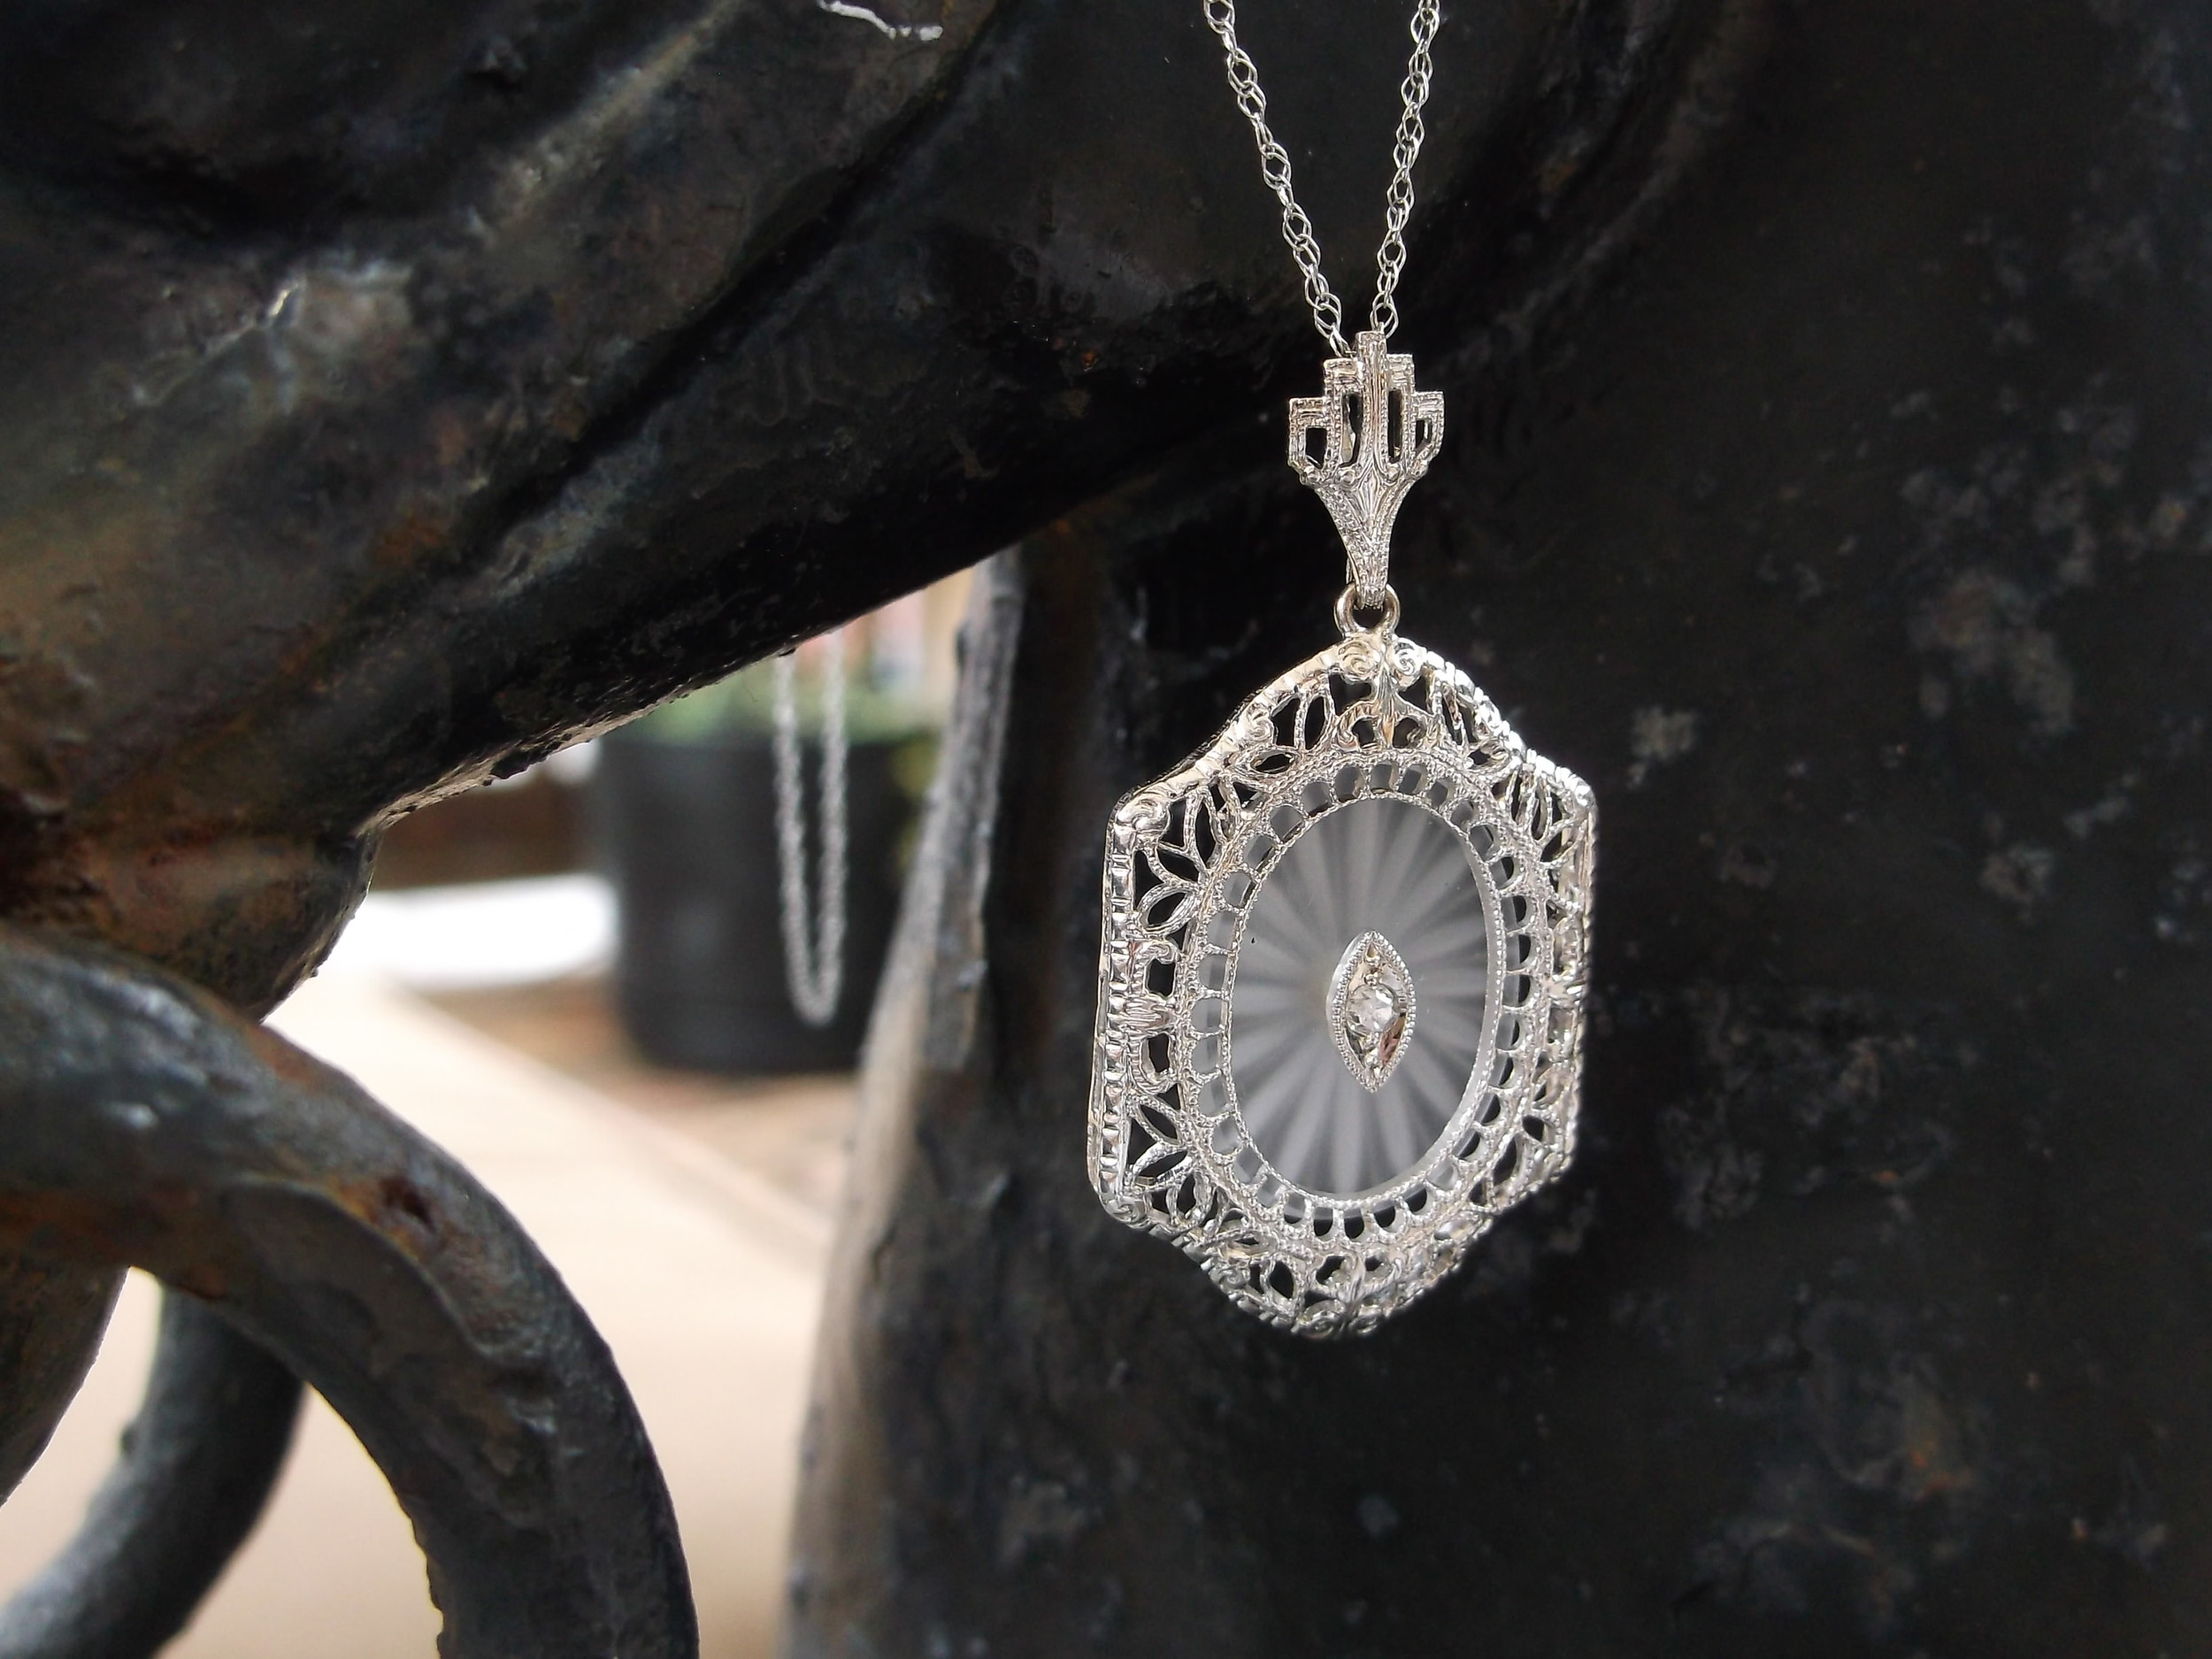 SOLD - Gorgeous Art Deco carved quartz set in an intricate white gold pendant with a diamond in the center.